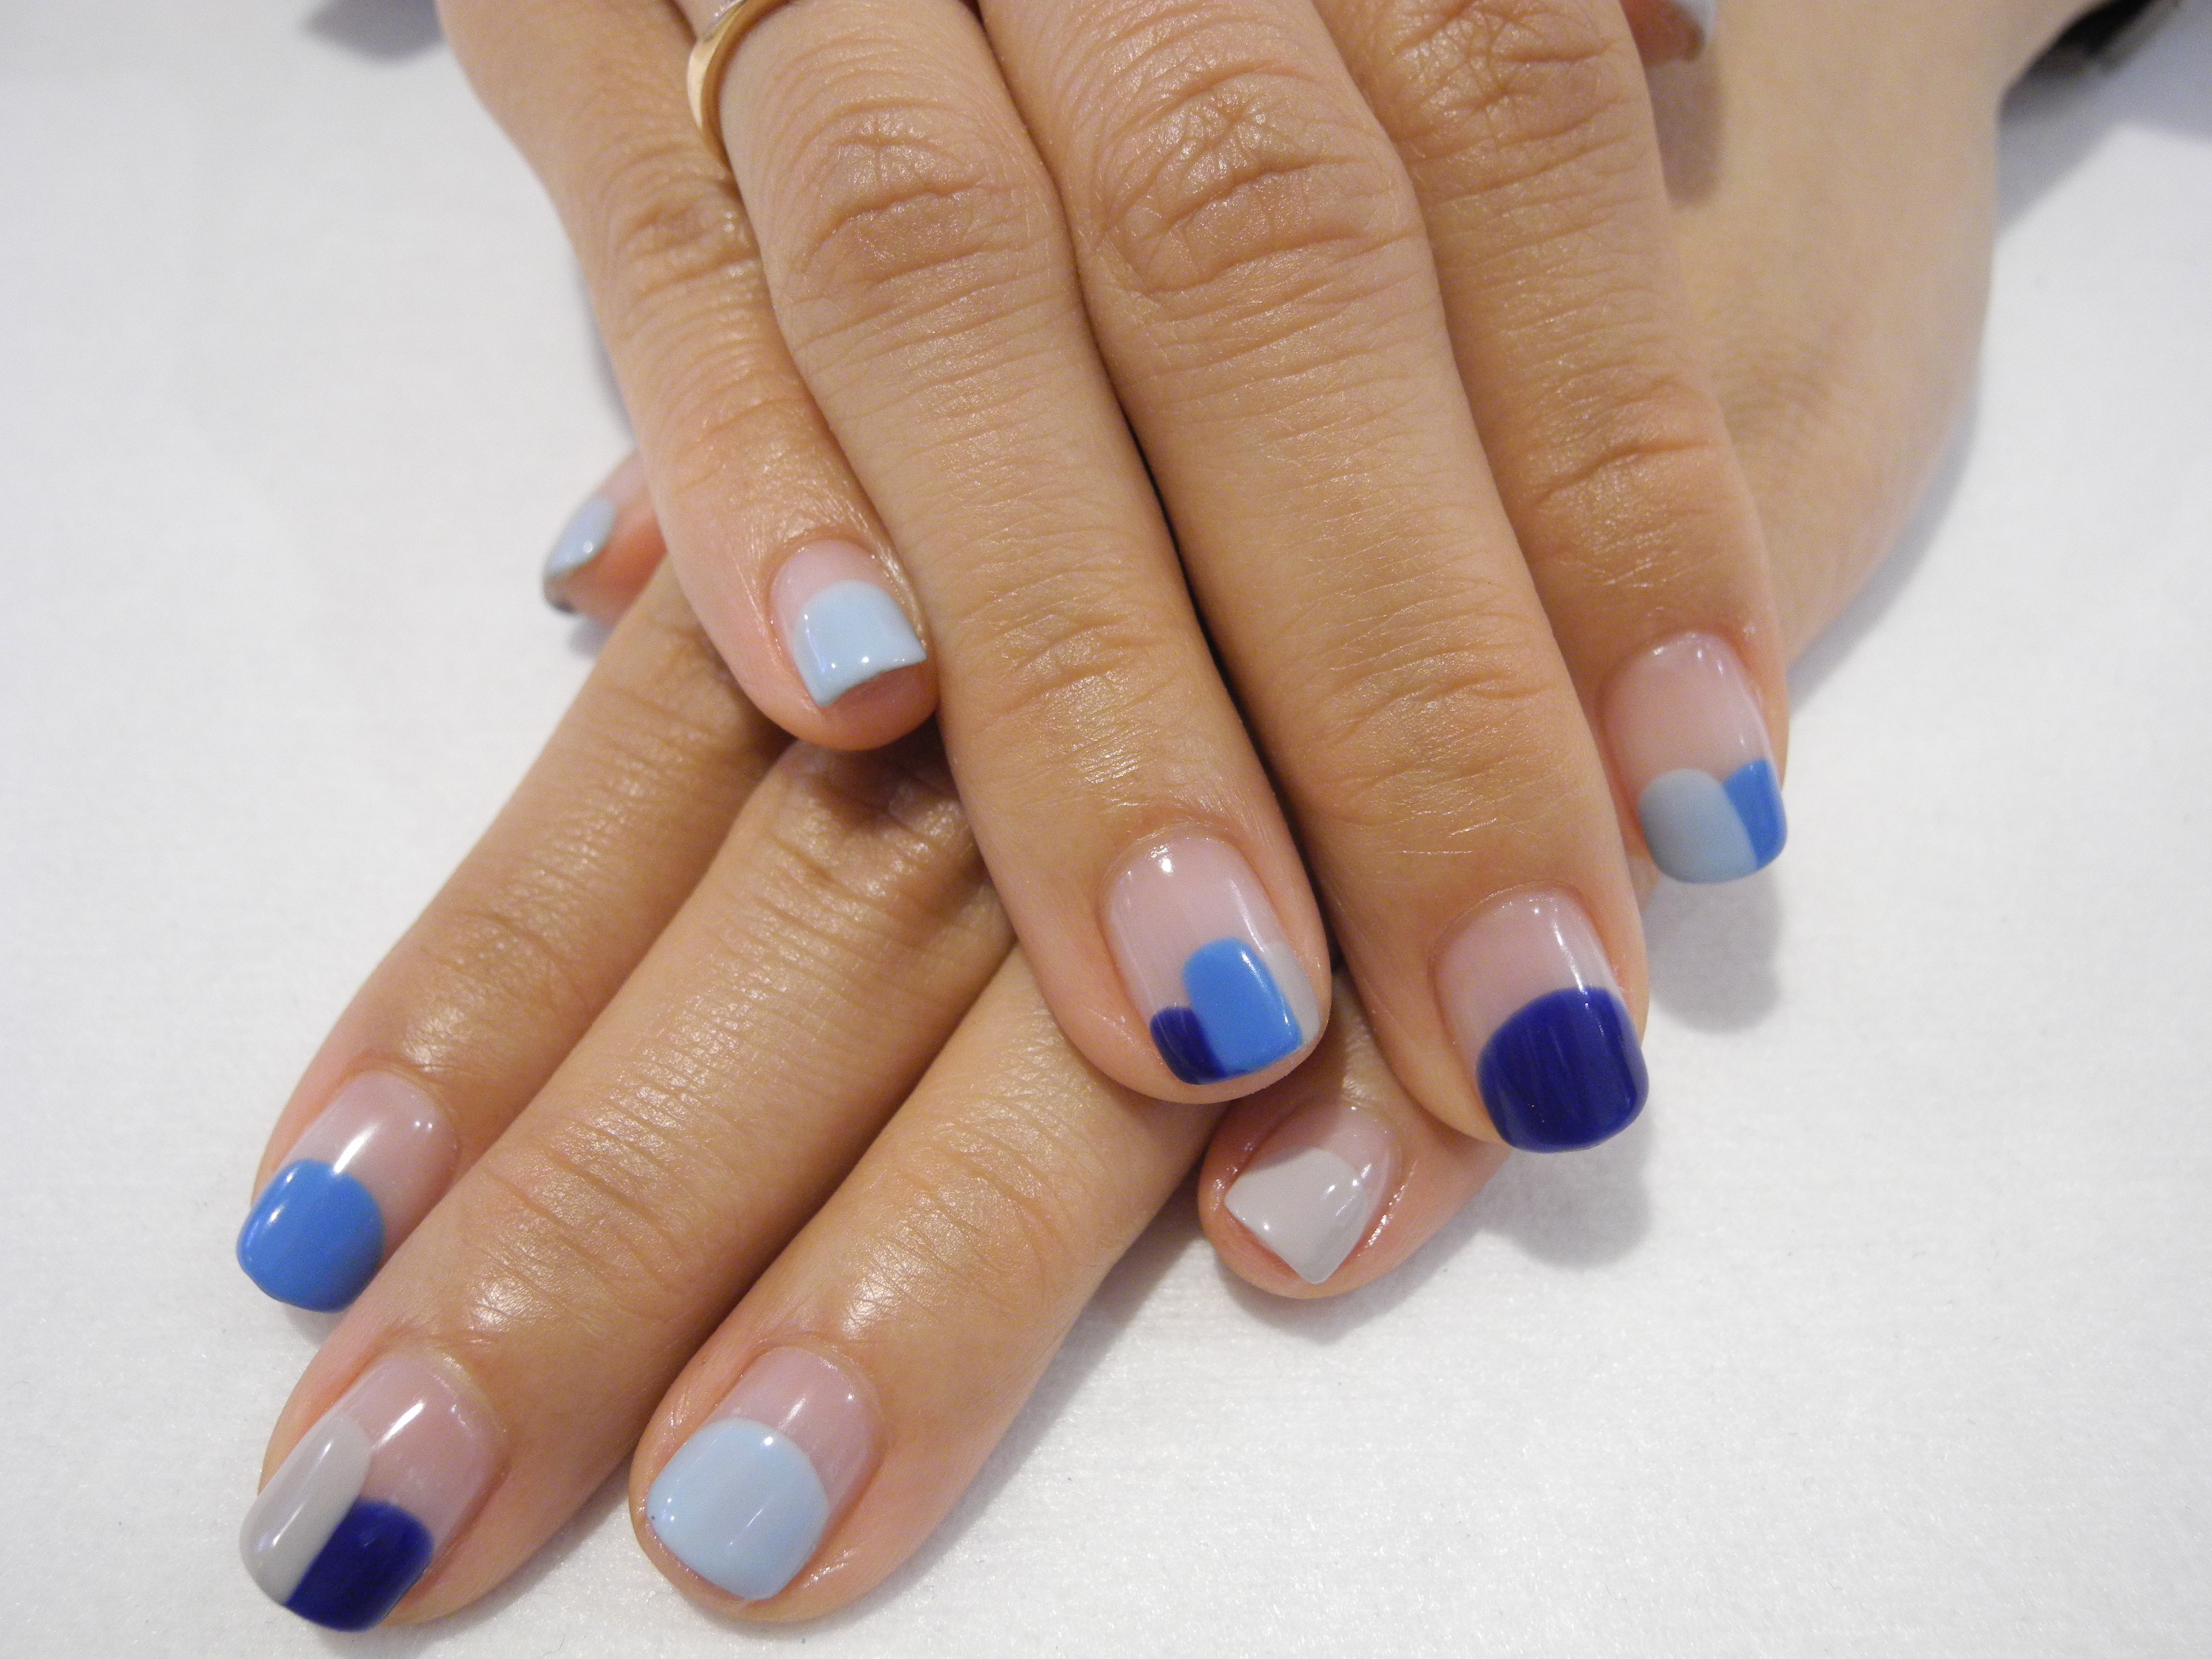 Rainbow Nails Opi Premium Manicure And Pedicure Services Nail Supply